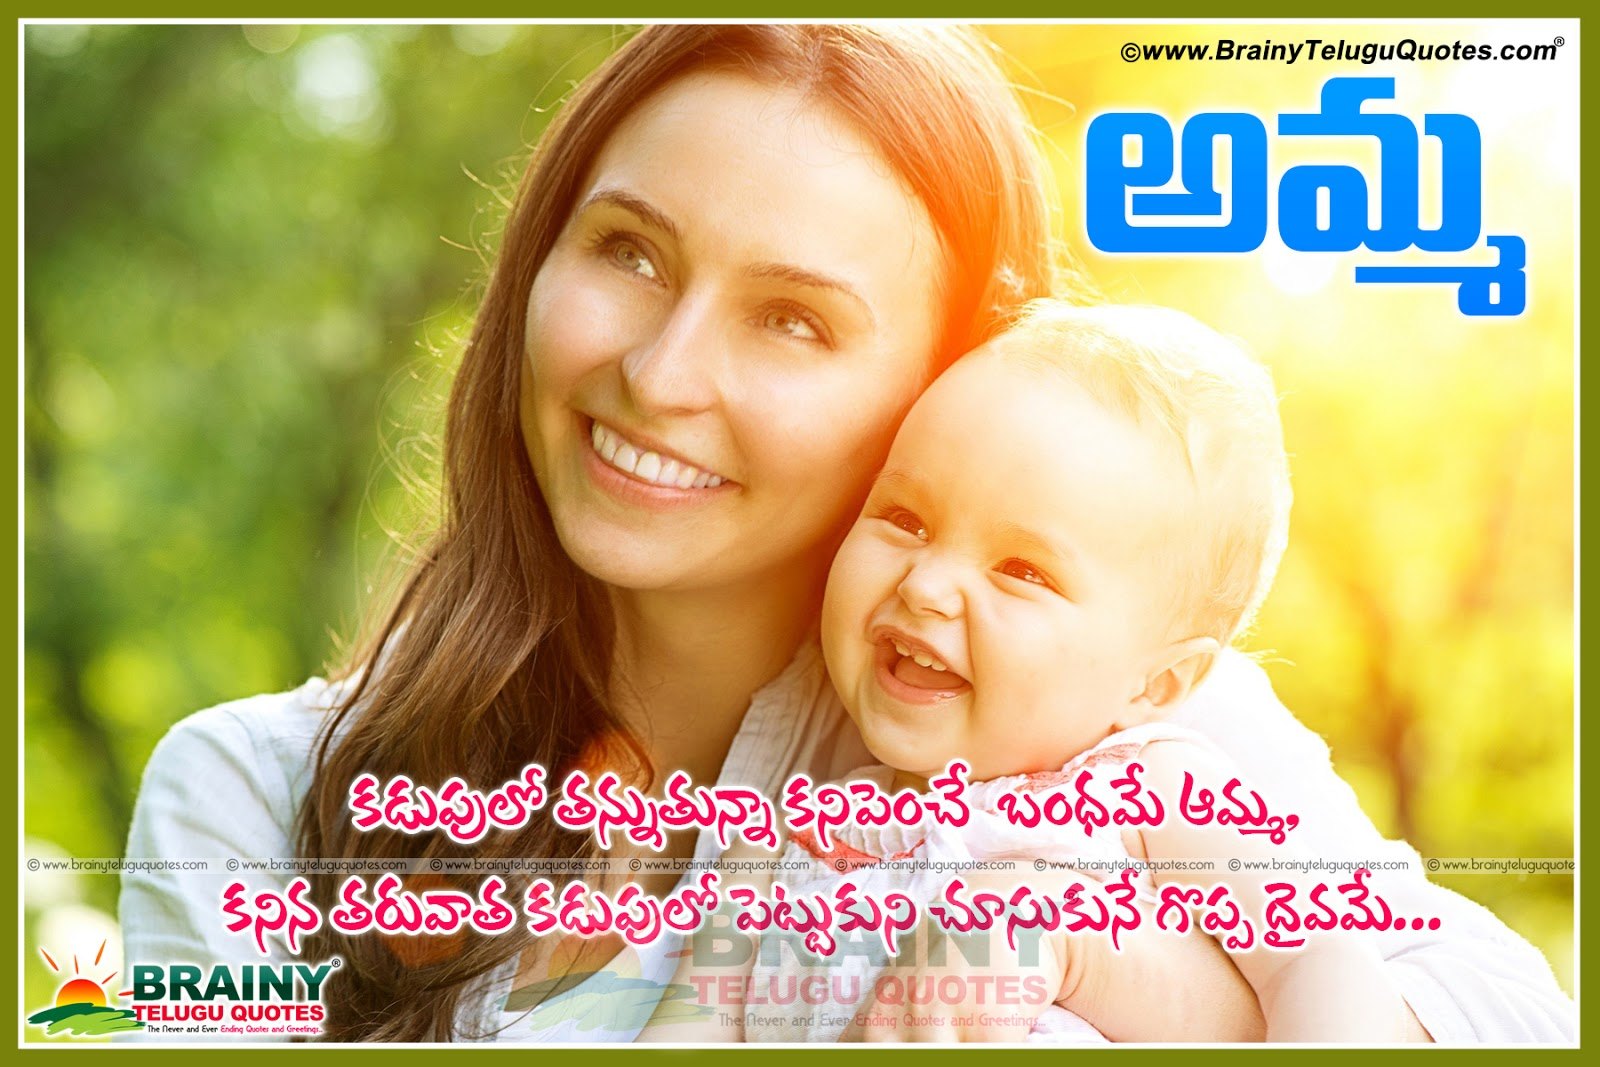 Amma Telugu Mother Quotes And Awesome Amma Kavithalu Amma Nanna Kavithalu In Telugu 1600x1067 Download Hd Wallpaper Wallpapertip